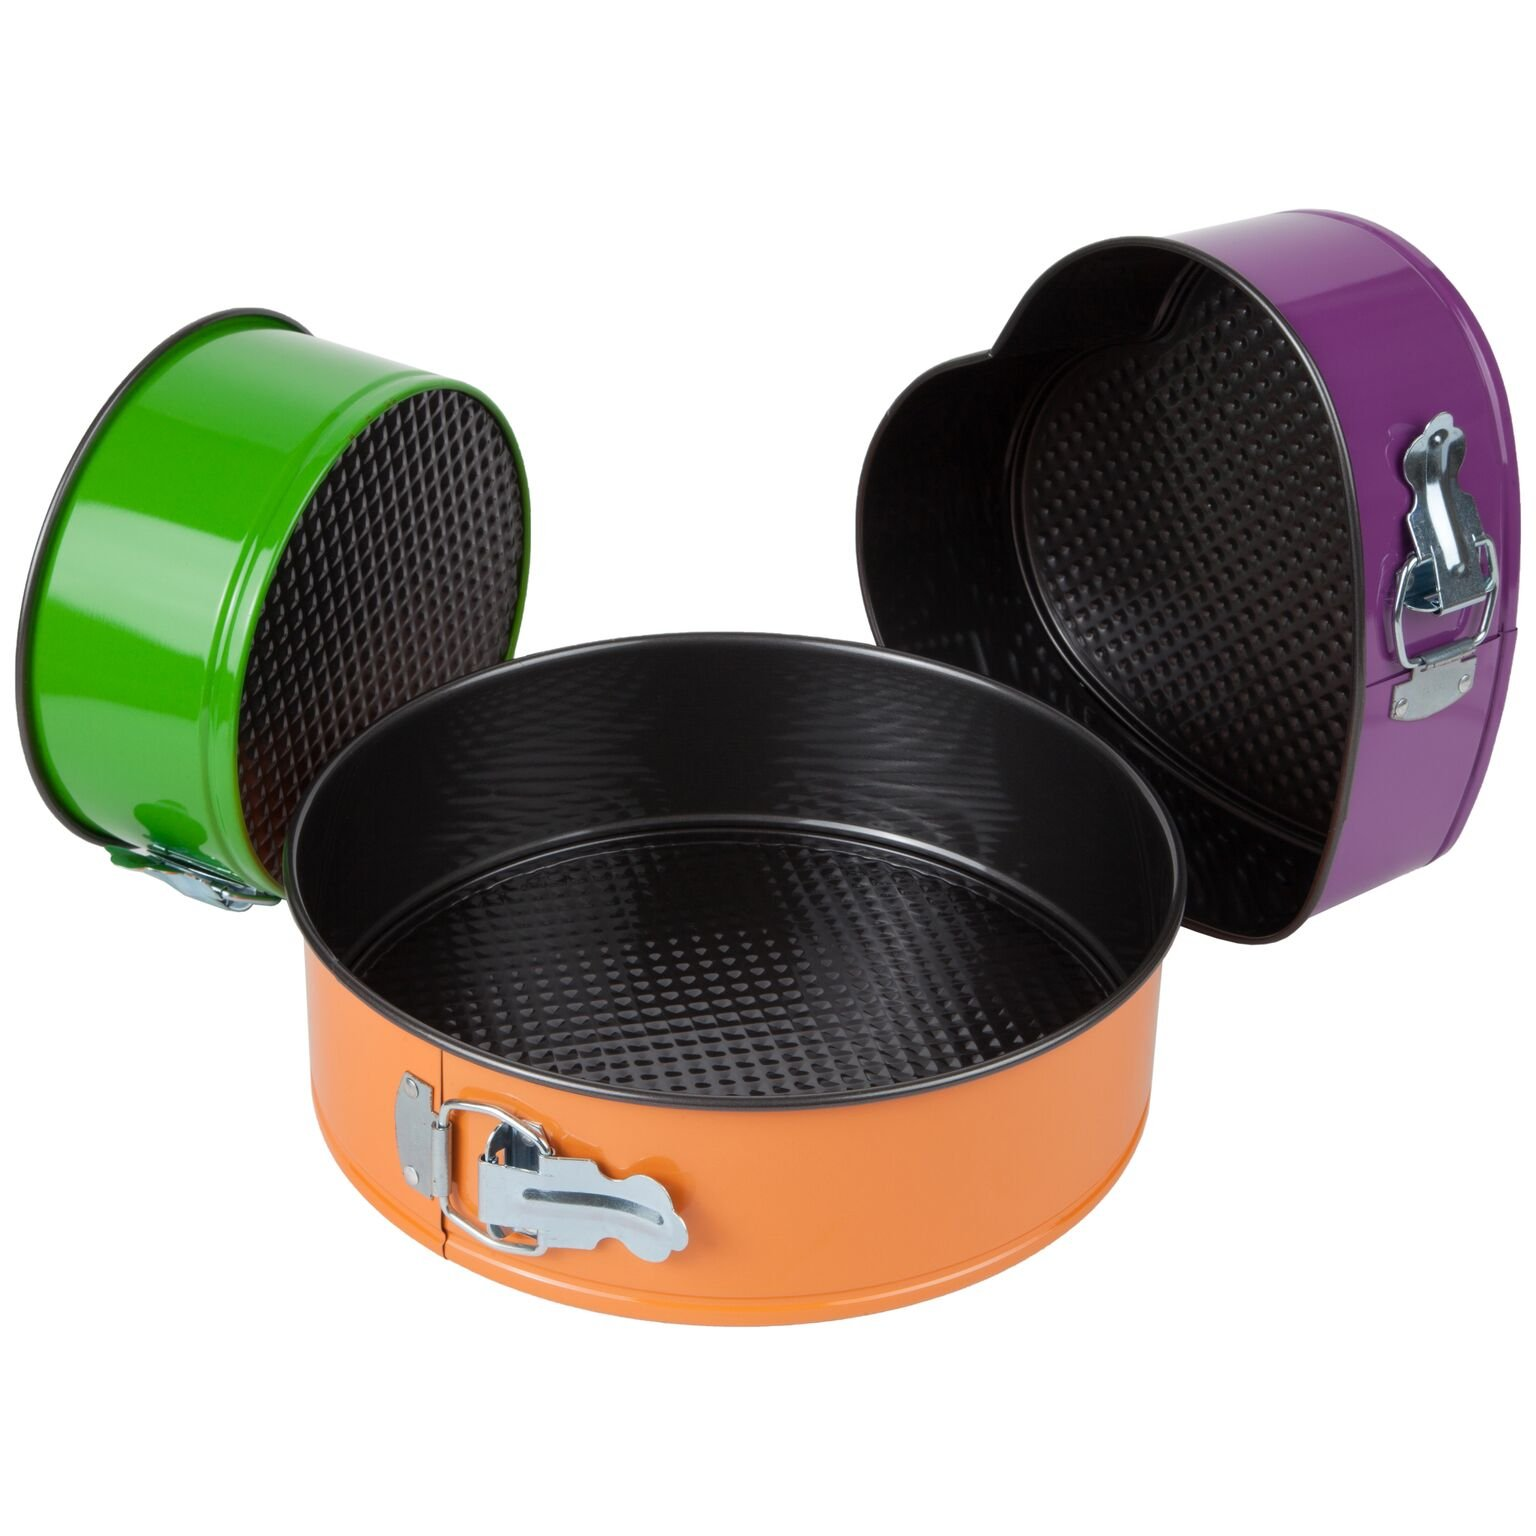 Trenton Gifts Set of 3 Springform Pans with 2 Round and 1 Heart Shaped by TRENTON (Image #4)